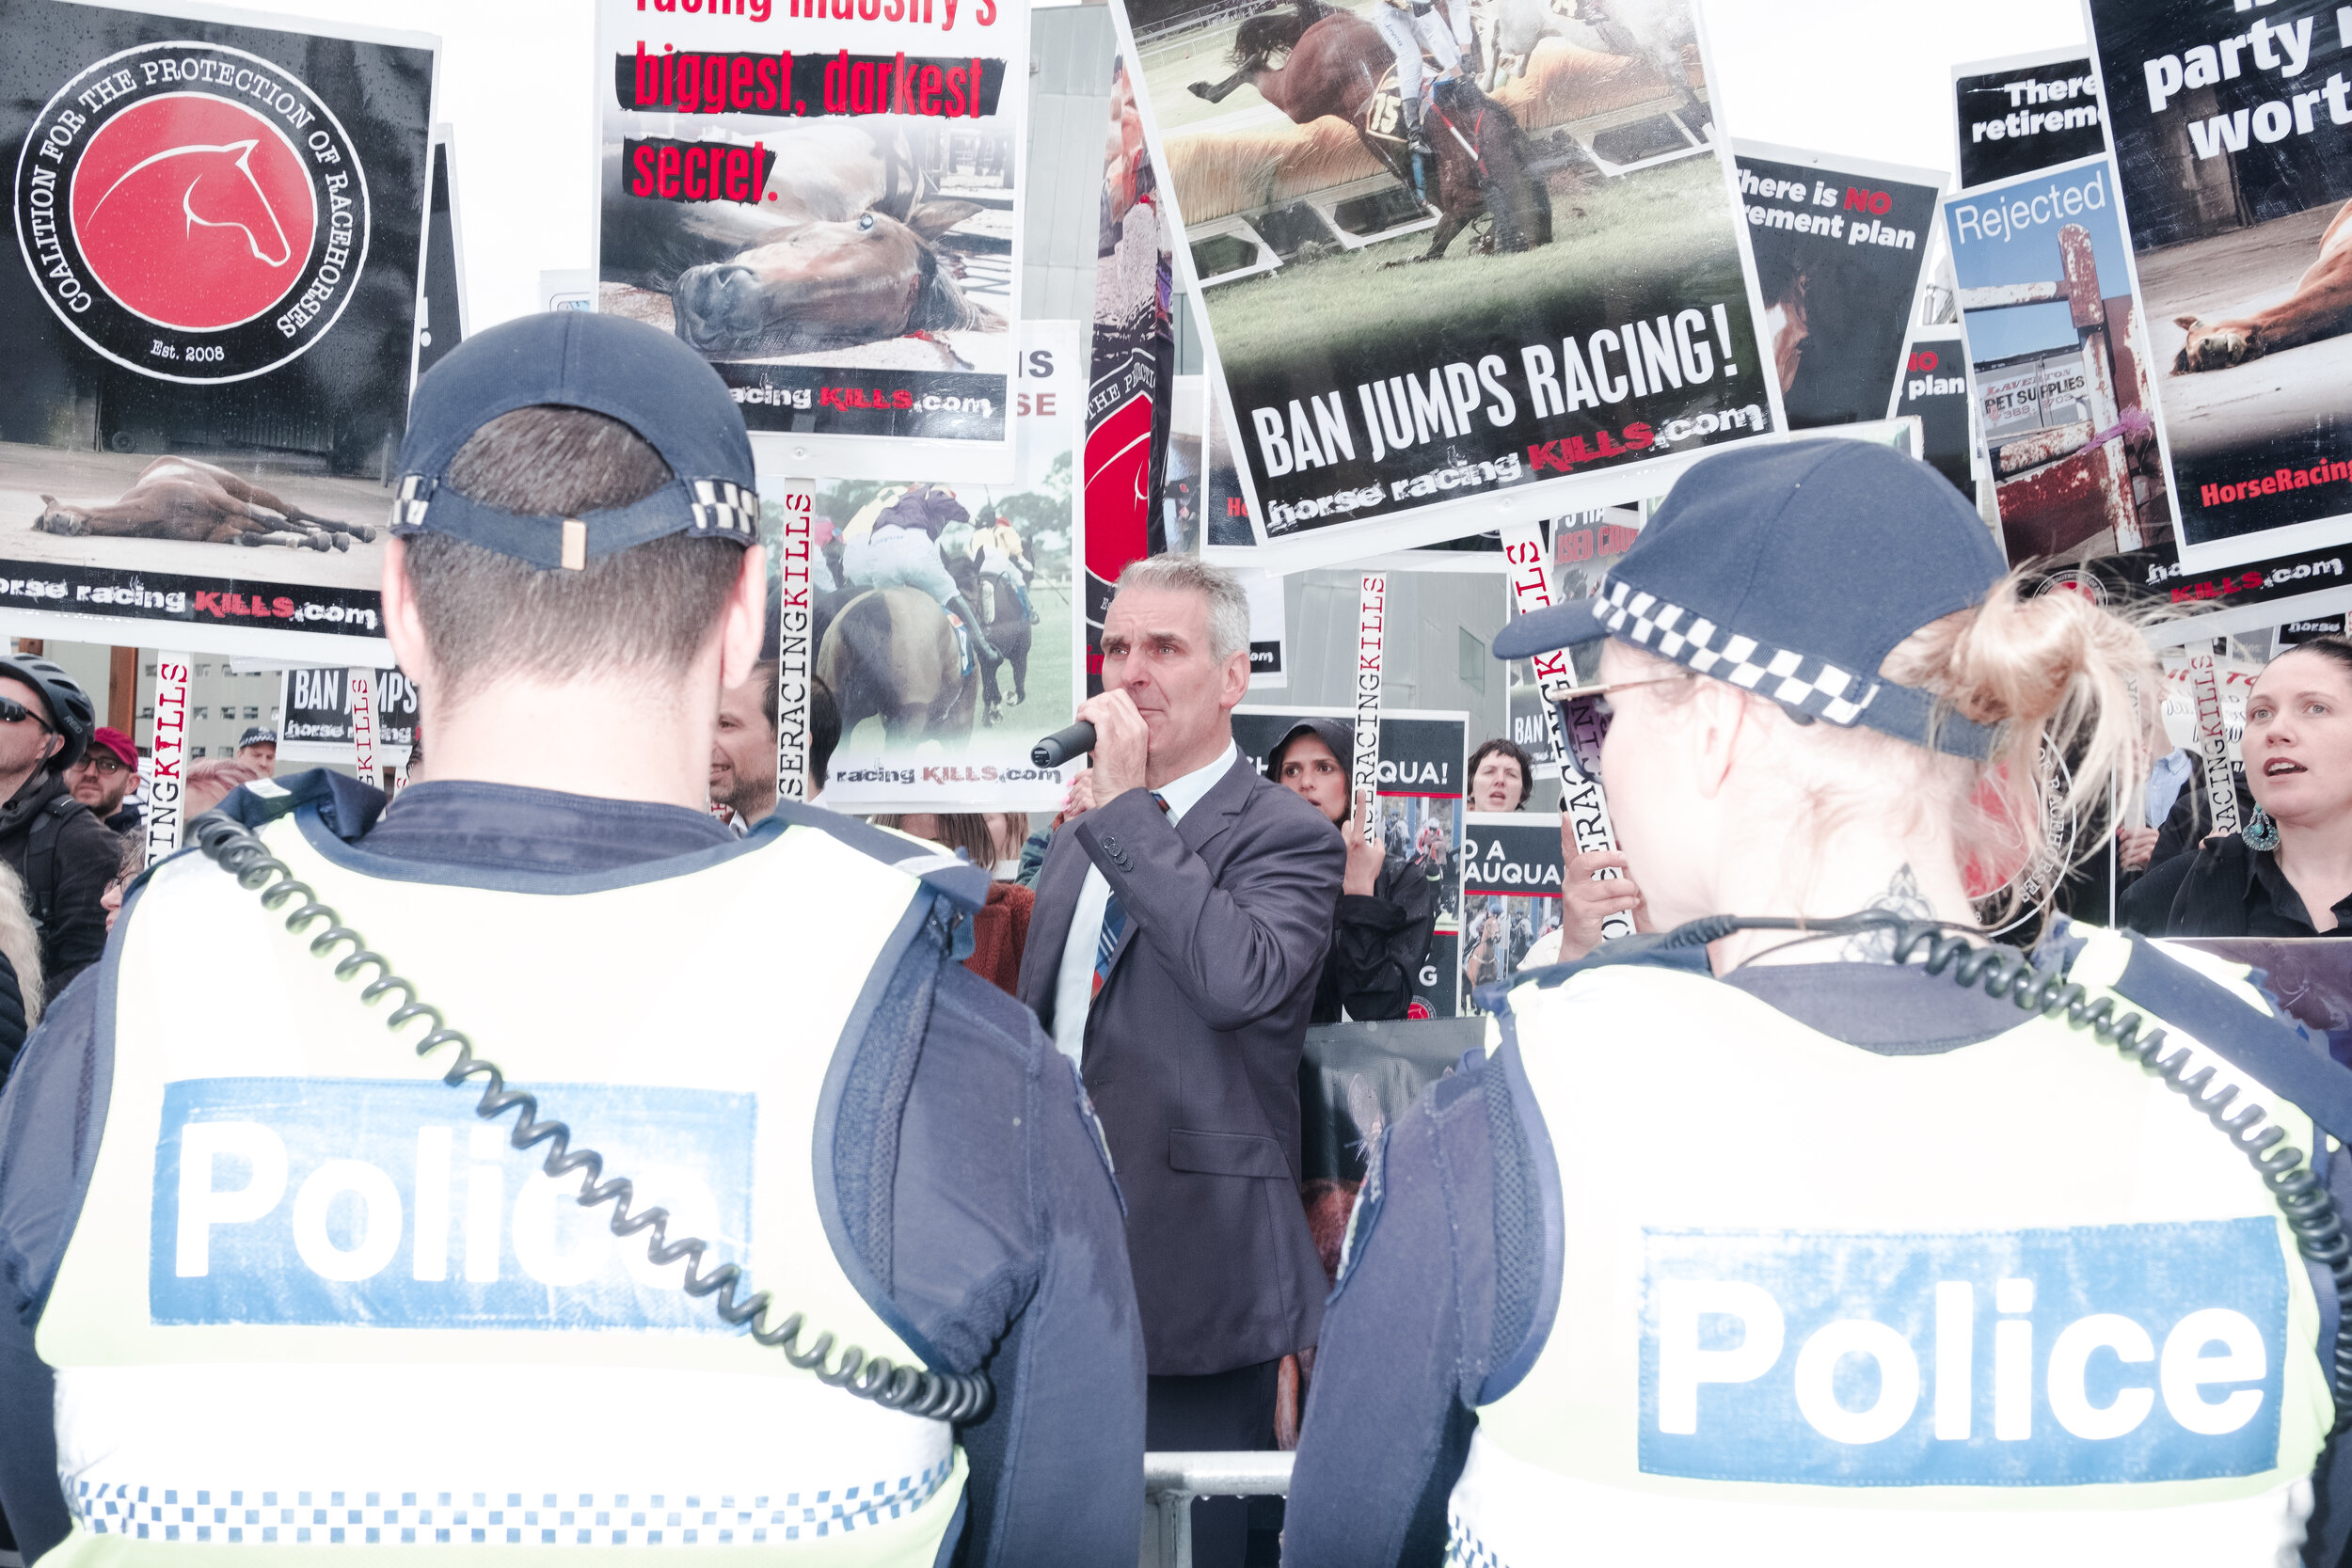 Police look on as protesters call for horse racing bans. (Photo: Jeremy Gan)